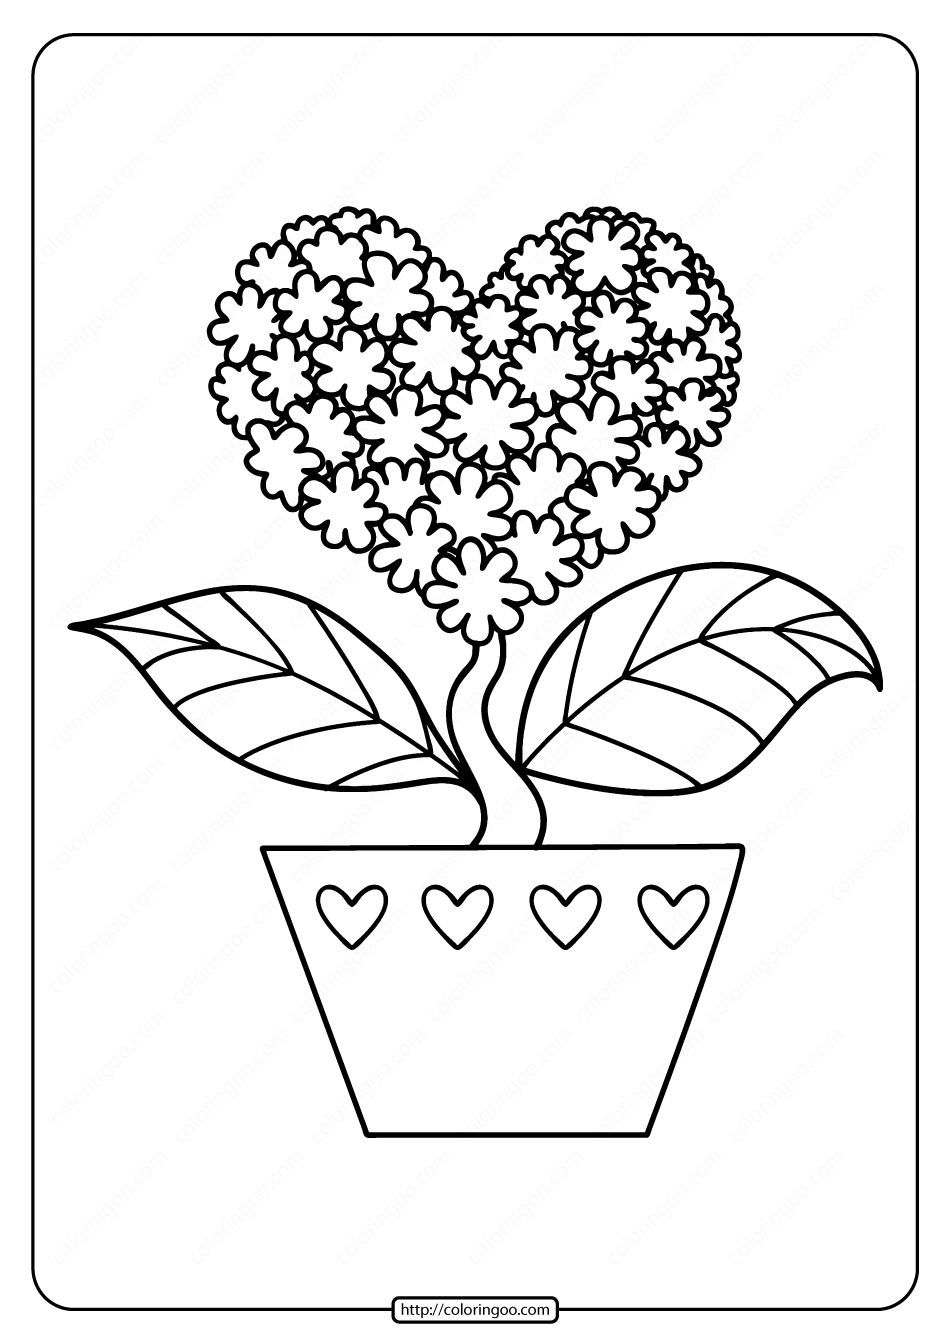 heart color pages free printable heart shaped flower coloring page color heart pages